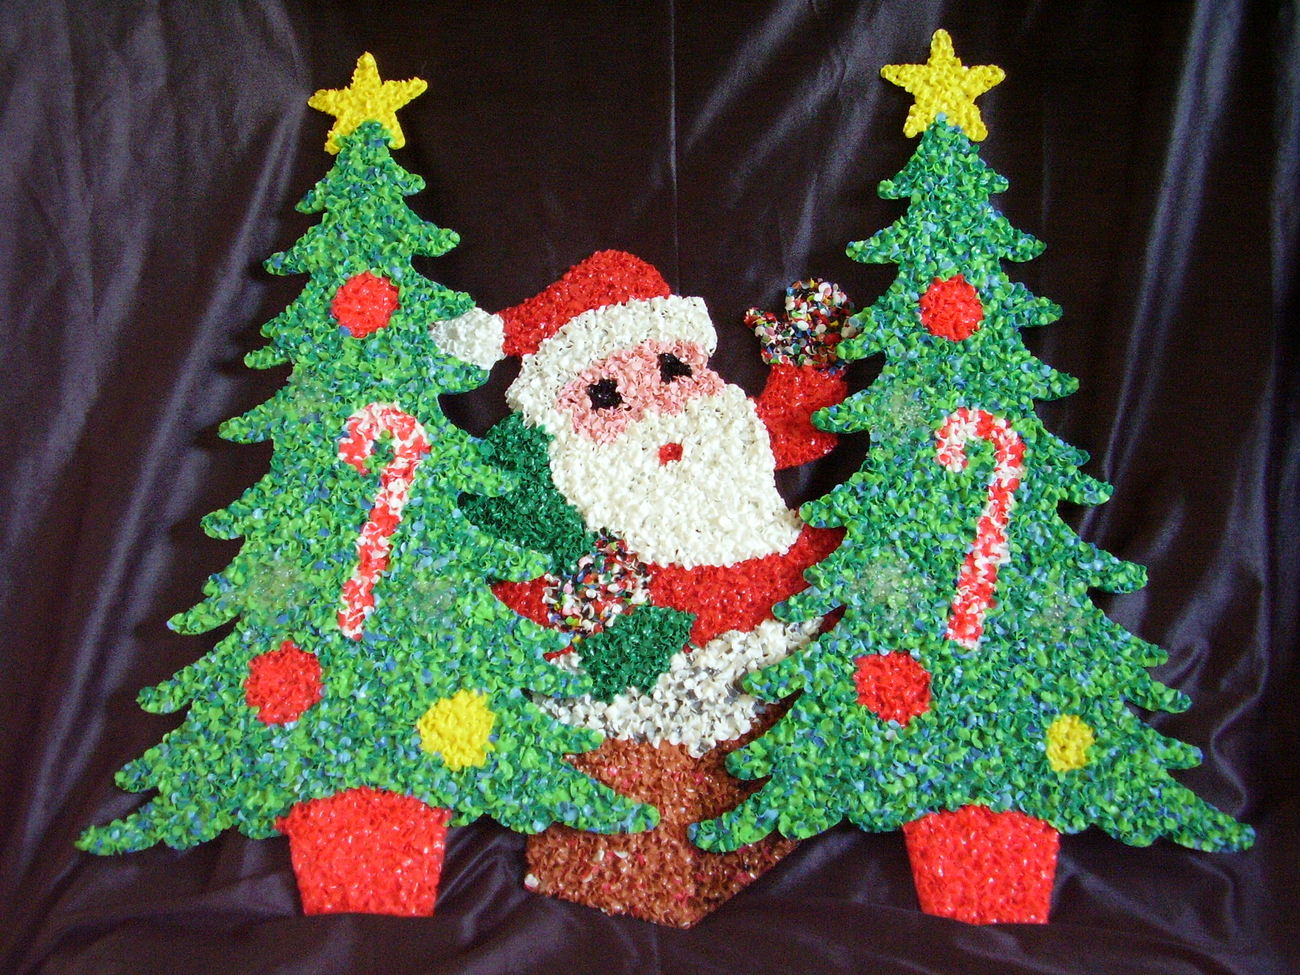 Melted Plastic Popcorn Decorations Santa Claus Christmas Trees Lot of 3